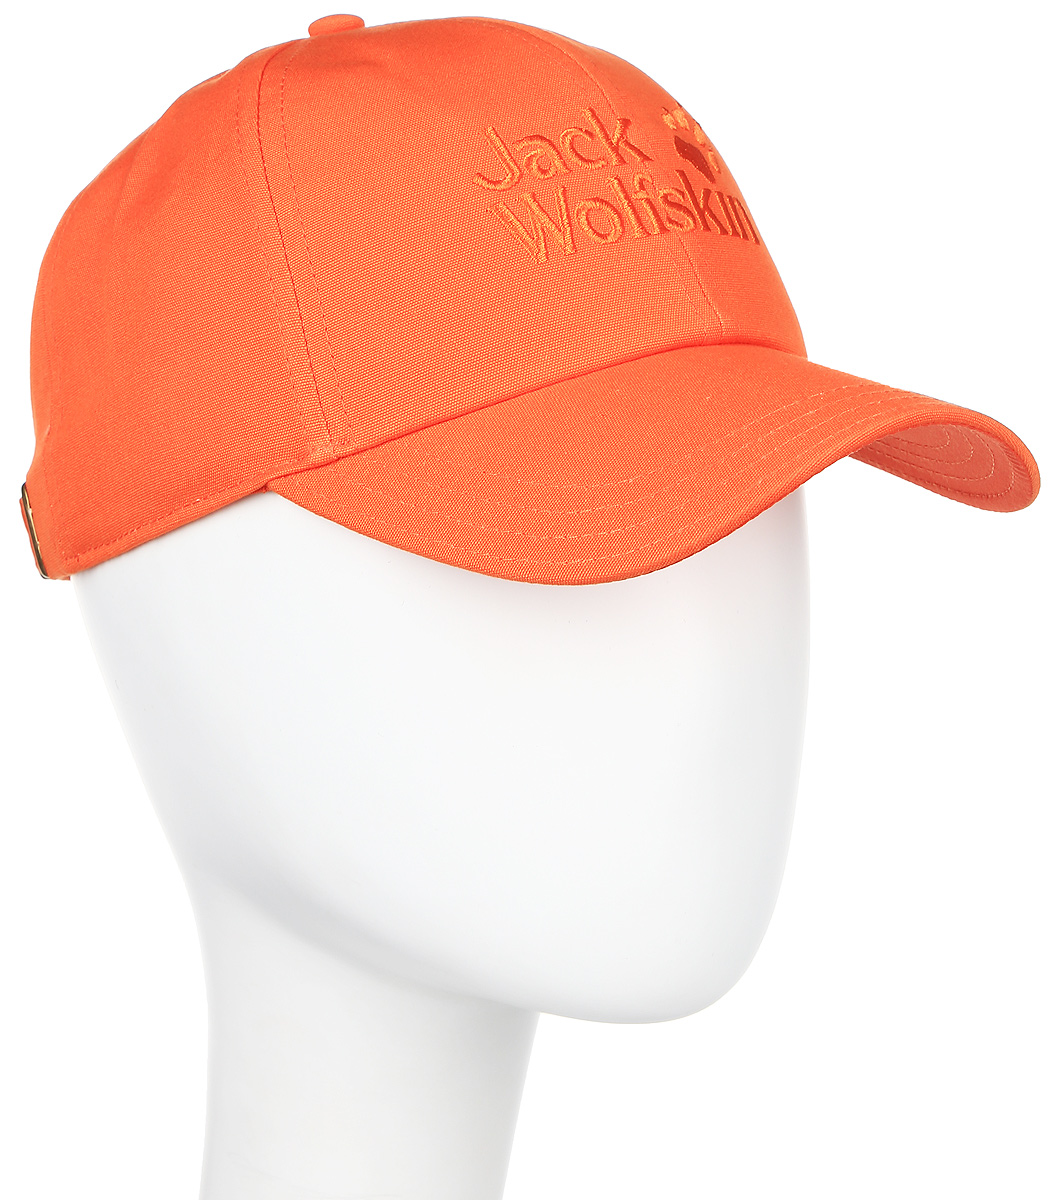 Бейсболка Jack Wolfskin Baseball Cap, цвет: оранжевый. 1900671-3727. Размер 56/61 2015 men hat thin breathable quick dry outdoor sunshade mesh baseball cap